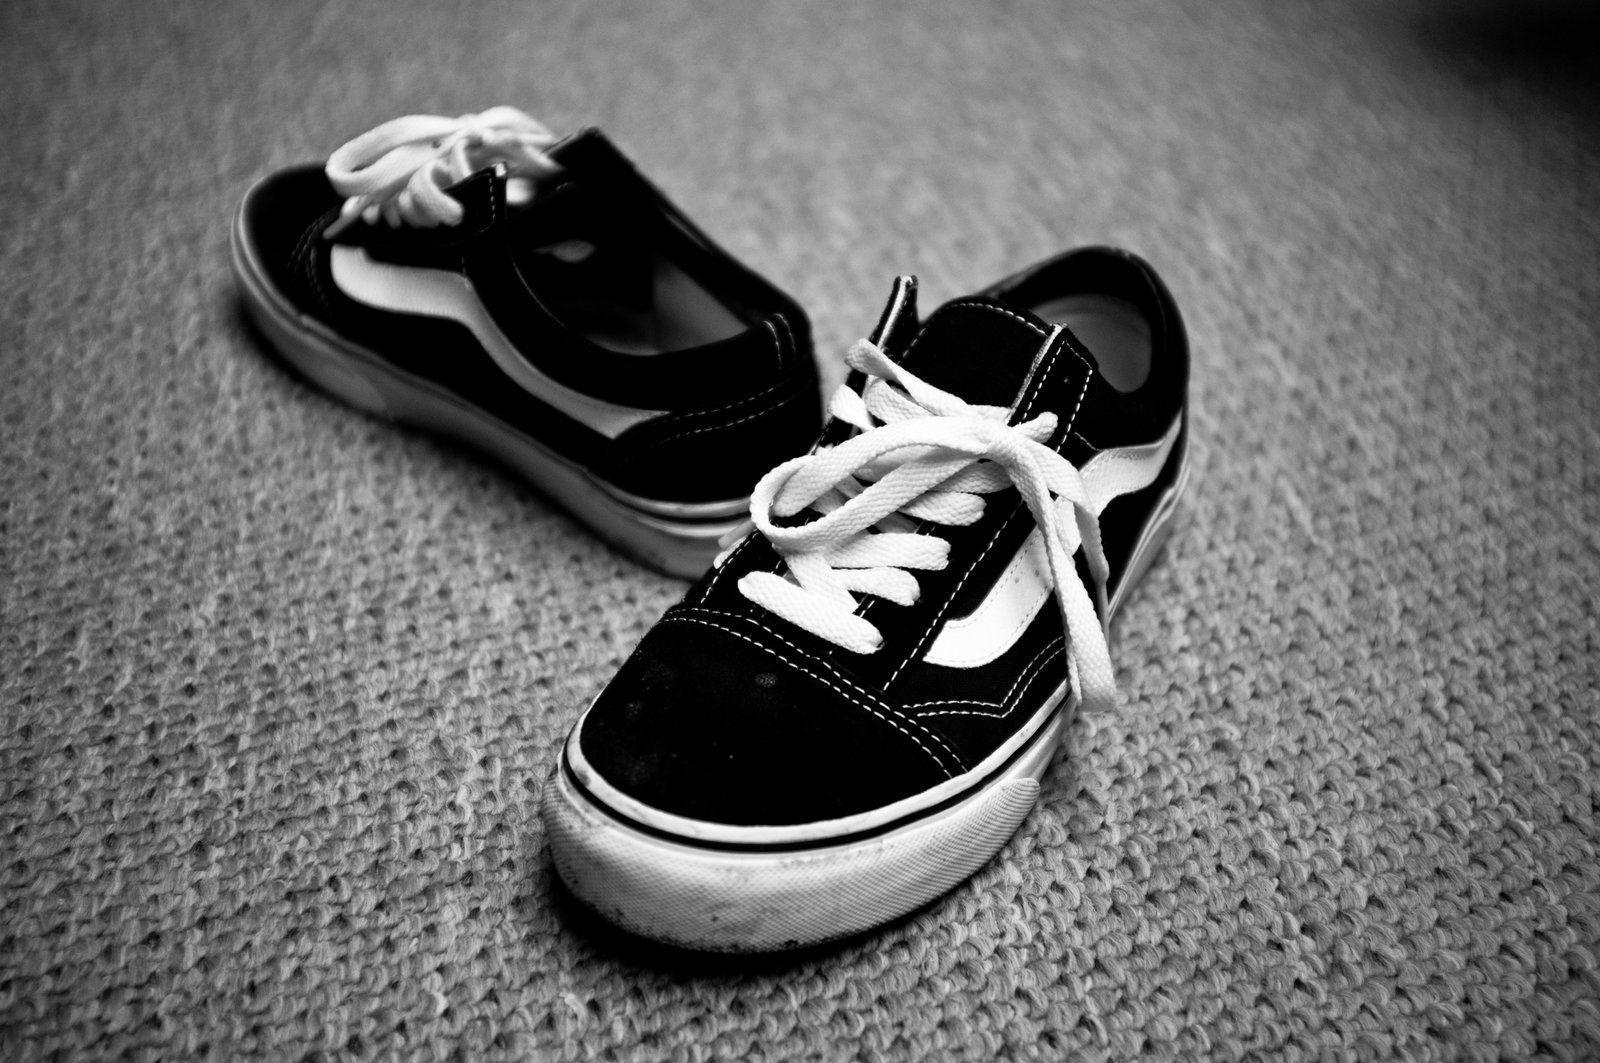 Vans iphone wallpaper tumblr - Wallpapers For Vans Off The Wall Wallpaper Tumblr